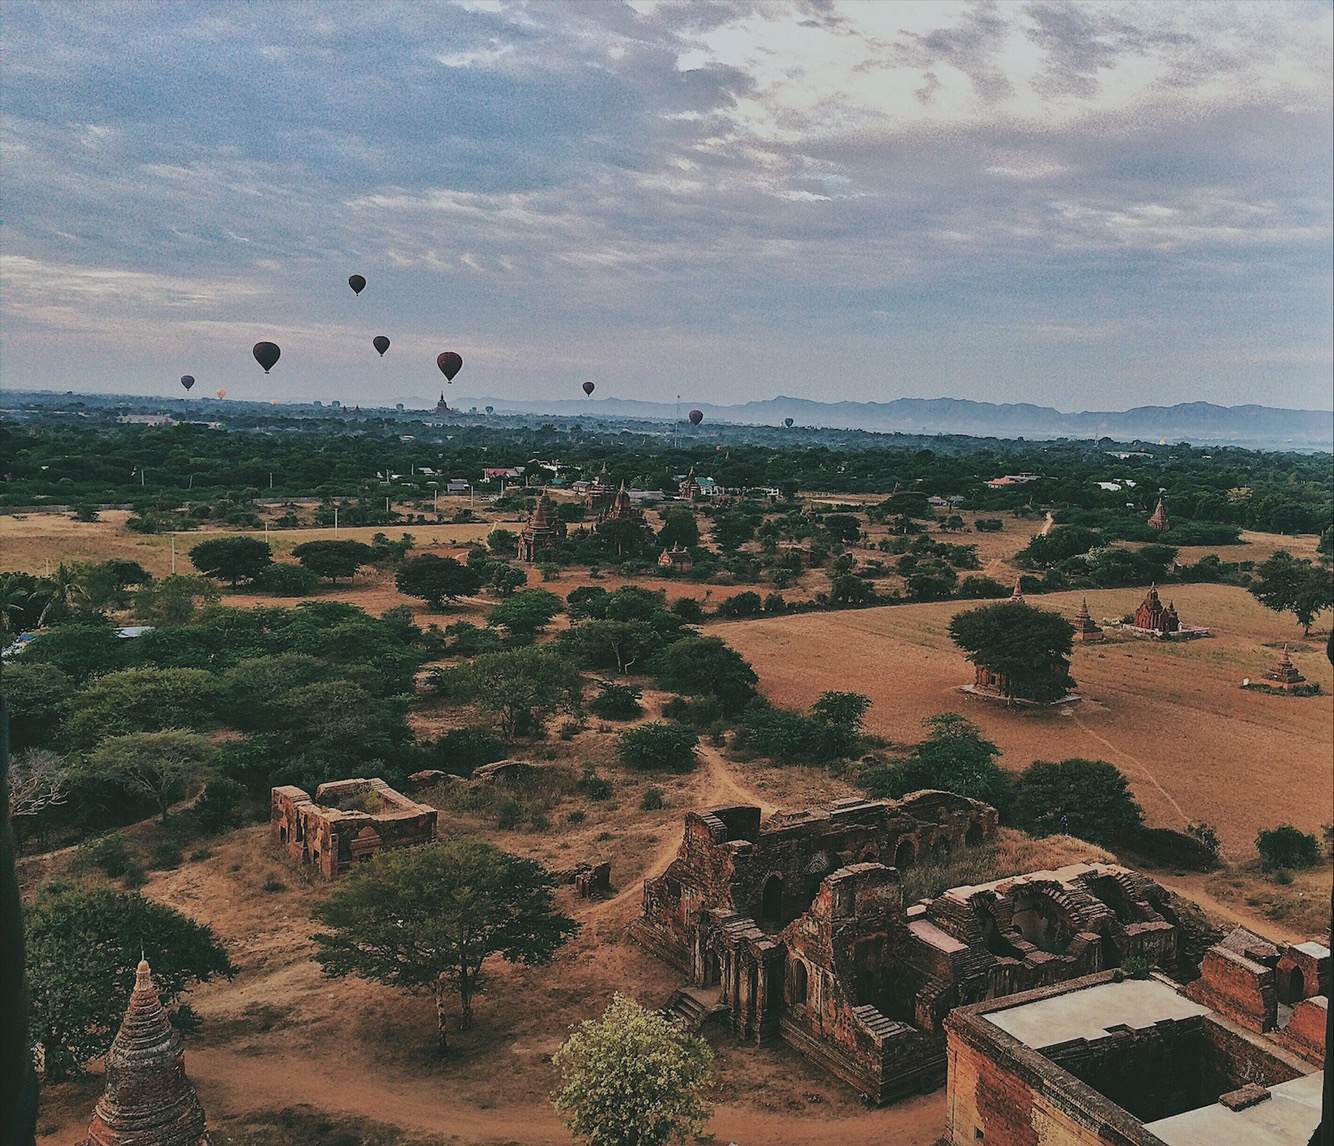 Hot Air Balloon Bagan Myanmar